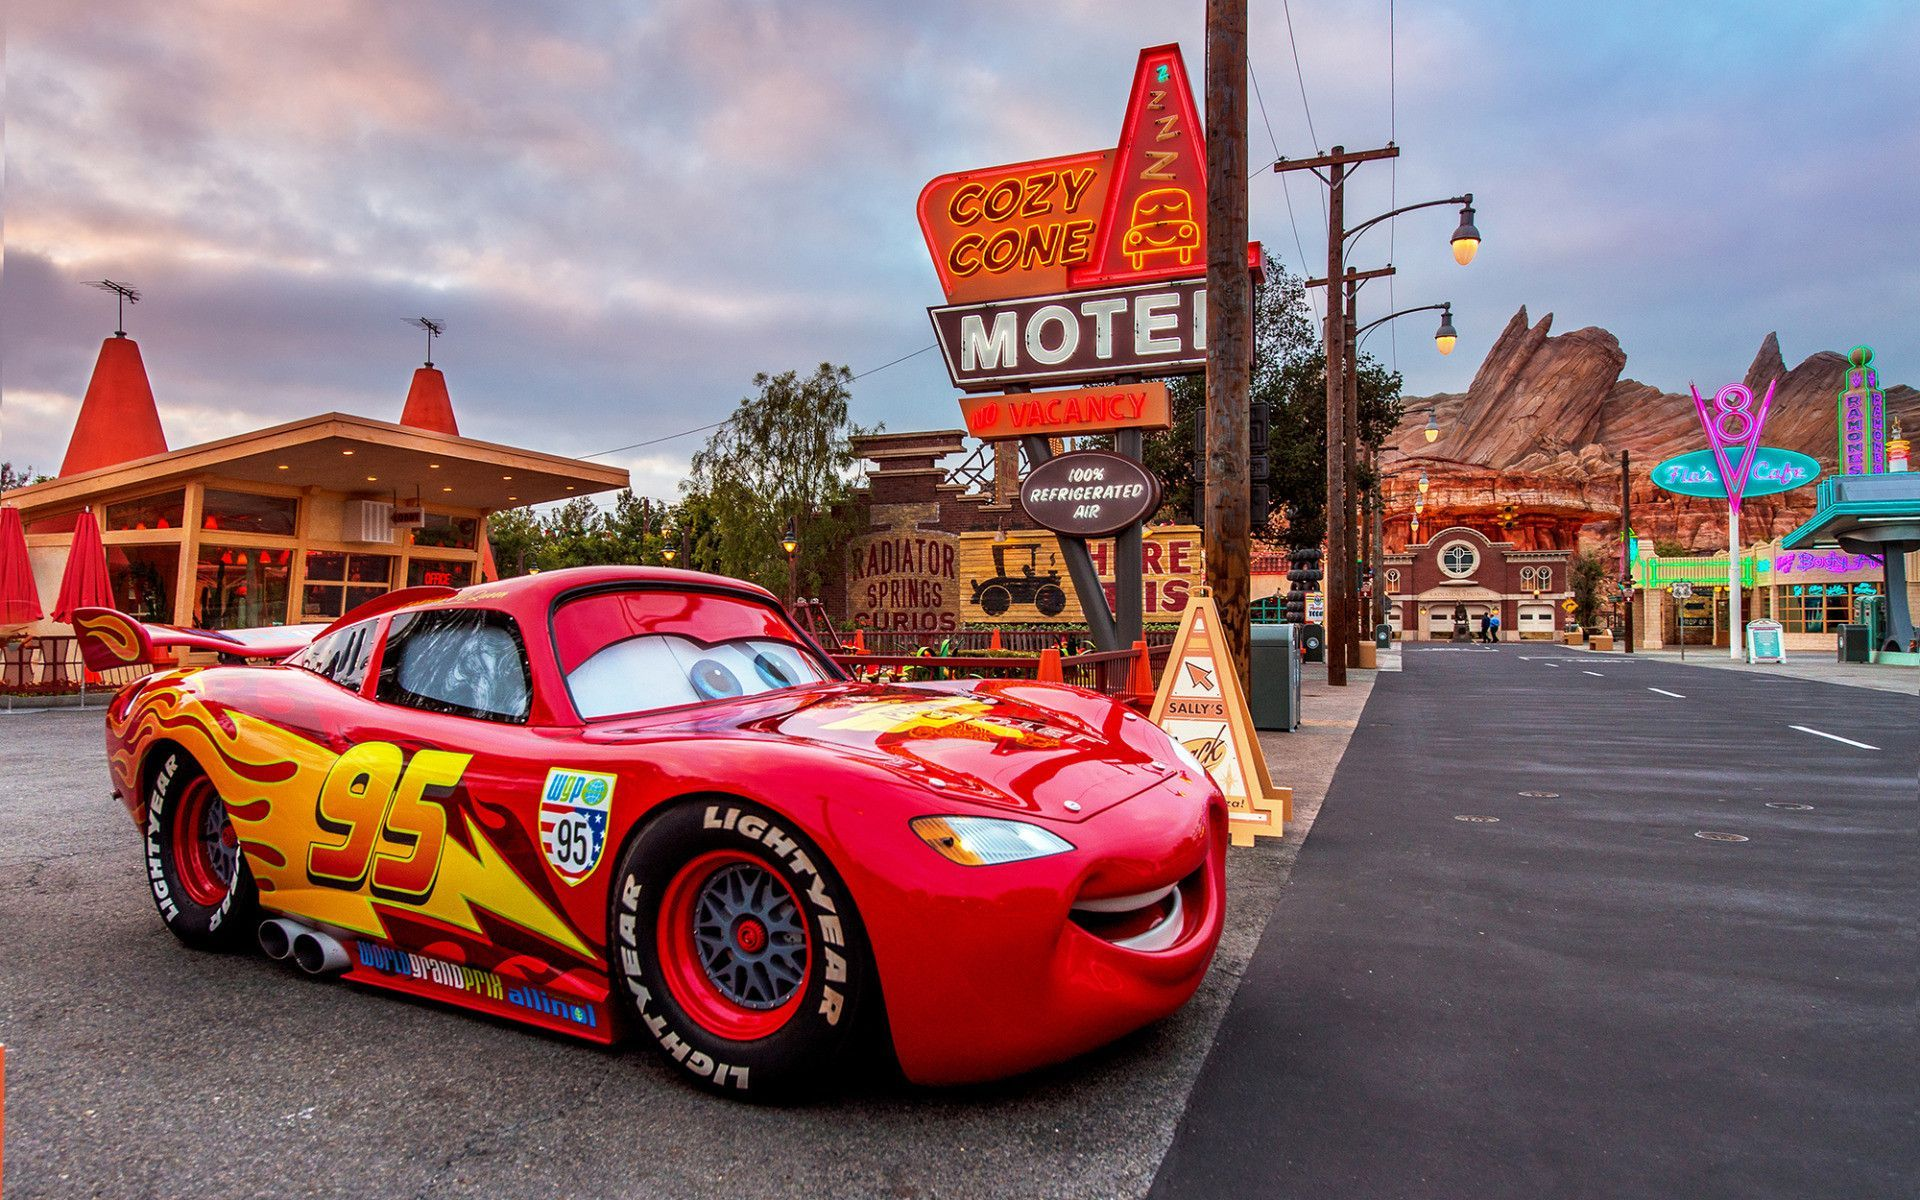 Wide Wallpaper Cars Lightning Mcqueen With Hd Wallpaper Hd 1366x768 With Wallpaper Cars Lightning Mcquee Disney Cars Wallpaper Lightning Mcqueen Disney Cars